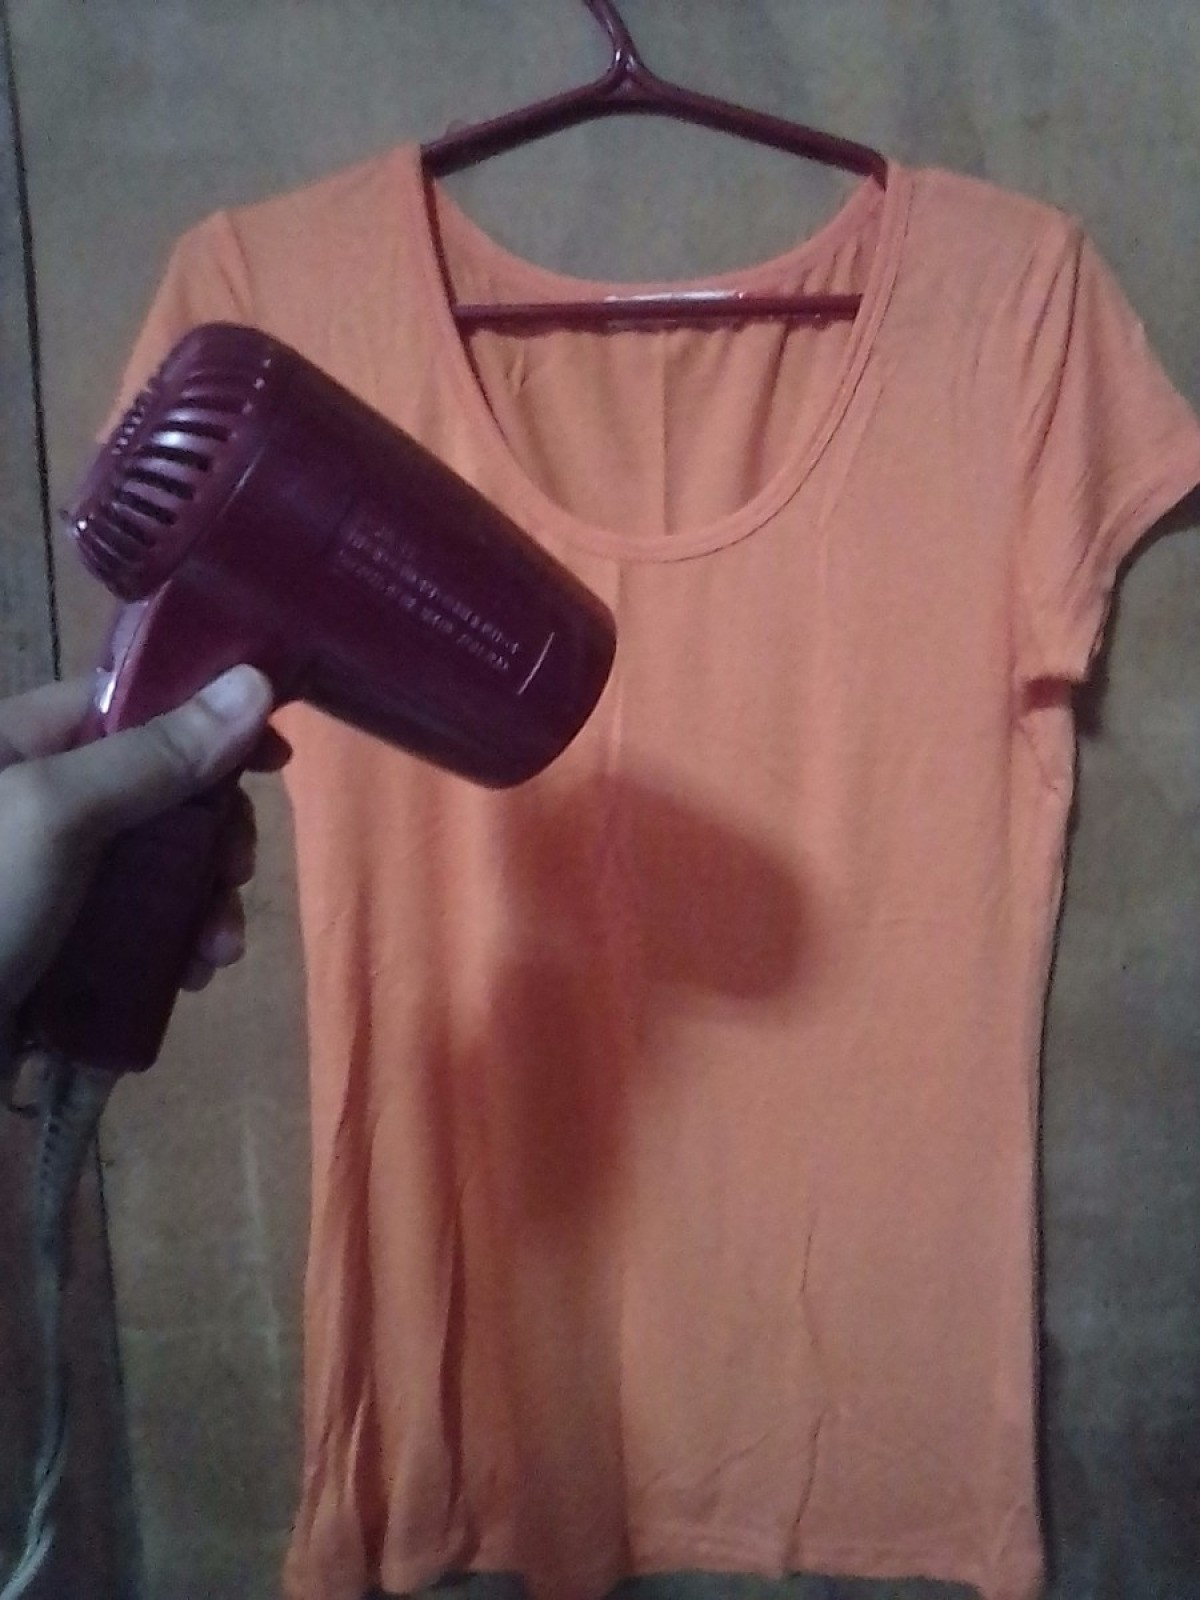 Use Hair Dryer To Remove Wrinkles In Clothes Thriftyfun